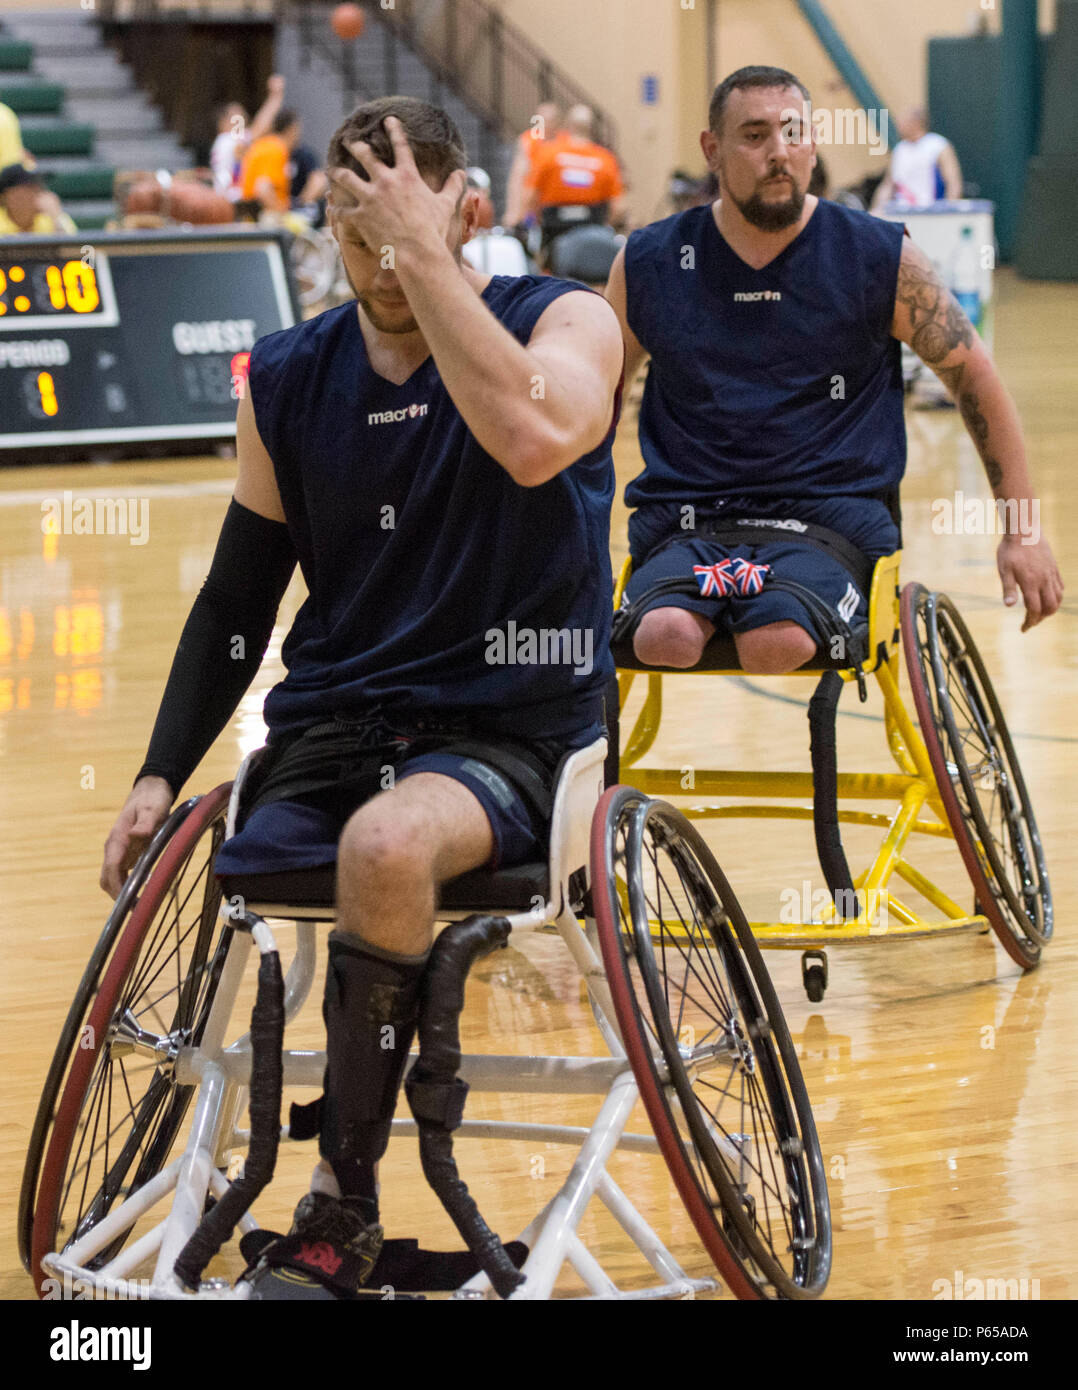 160505-F-WU507-024: British Army Pvt. Gareth Golightly (front) and British Army LCpl. Craig Winspear (both retired), leave the court as substitutions during a training game at the ESPN Wide World of Sports complex at Walt Disney World, Orlando, Fla., May 5, 2016. Team U.K. is one of 15 nations competing in the Invictus Games, which was created by Prince Harry, a former British Army officer and son of Prince Charles, the Prince of Wales. (U.S. Air Force photo by Senior Master Sgt. Kevin Wallace/RELEASED) - Stock Image